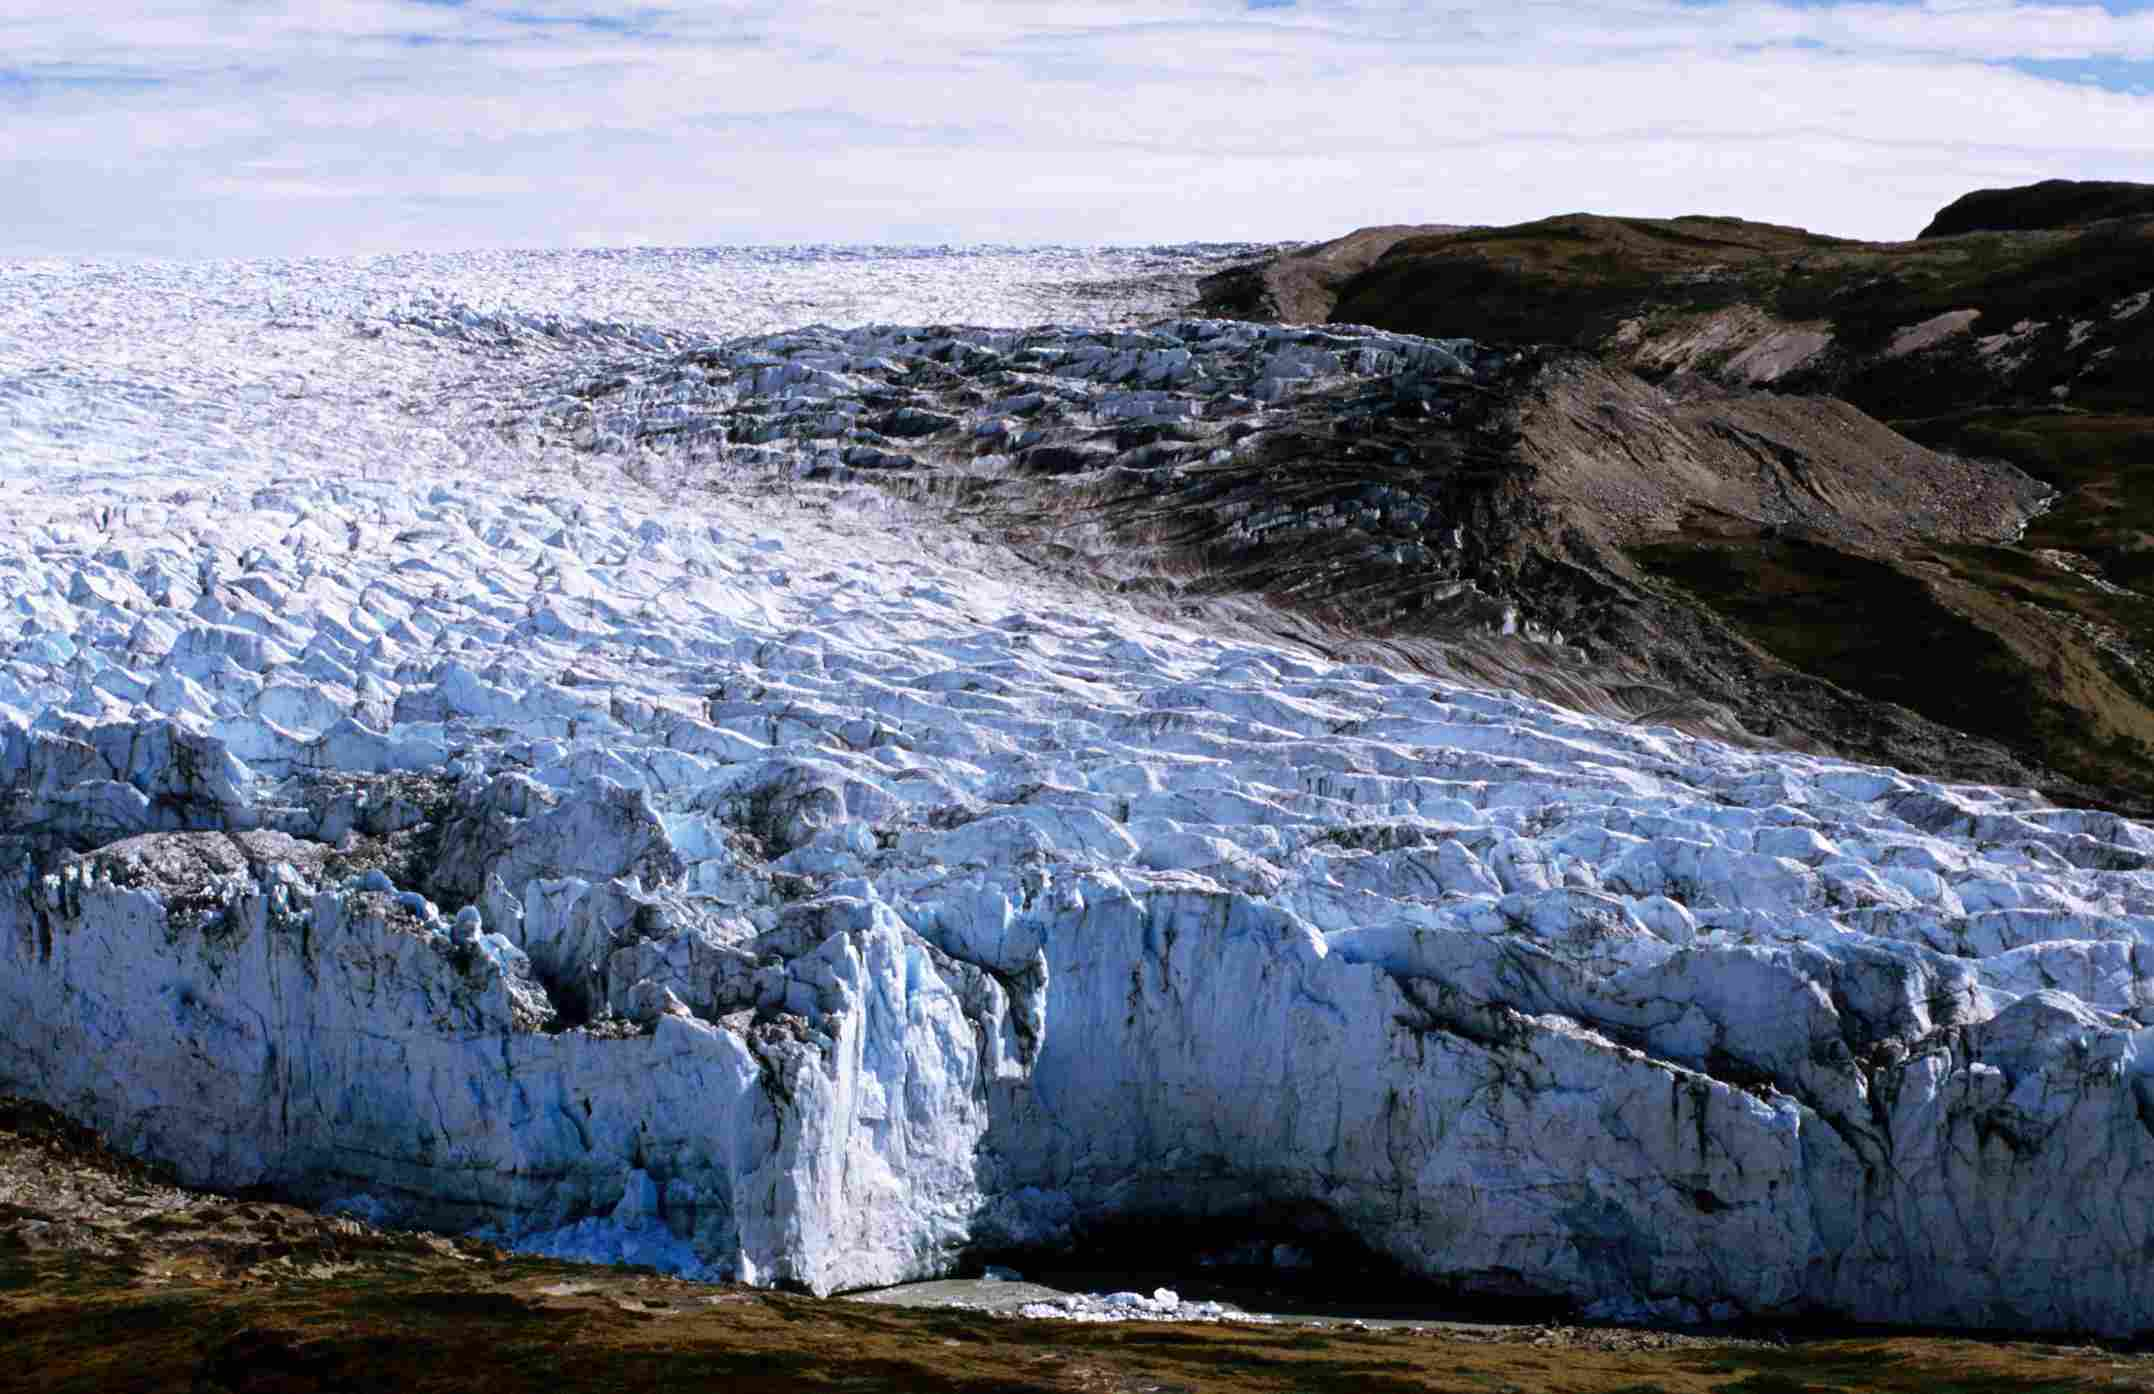 Continental arctic air forms over glacial landscapes like this Greenland ice-cap